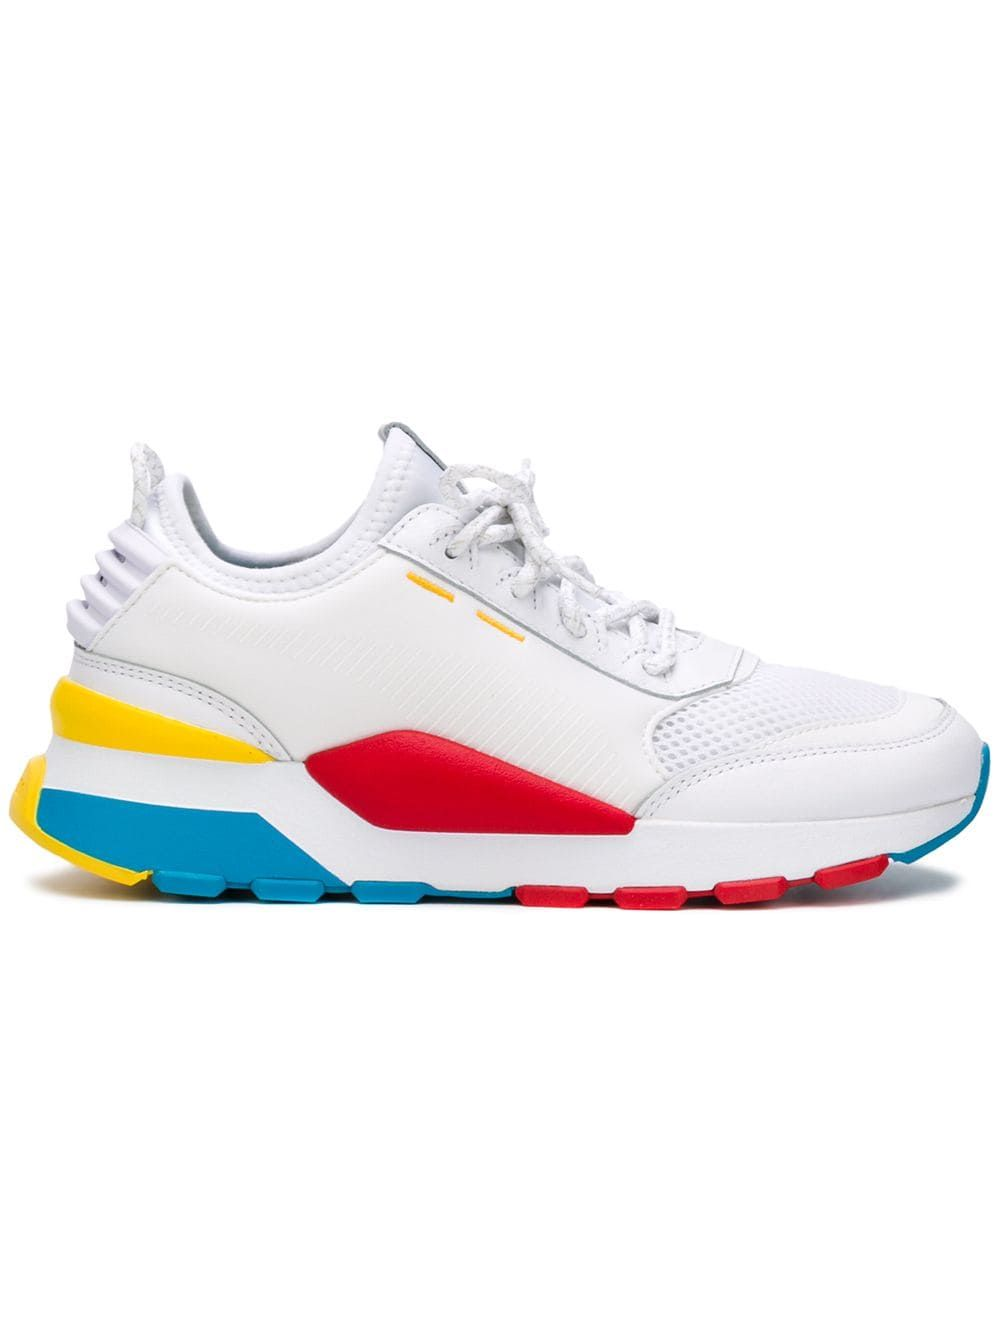 9b7d7ddb13b Puma RS-0 Play sneakers | Sneakers in 2019 | New puma sneakers ...